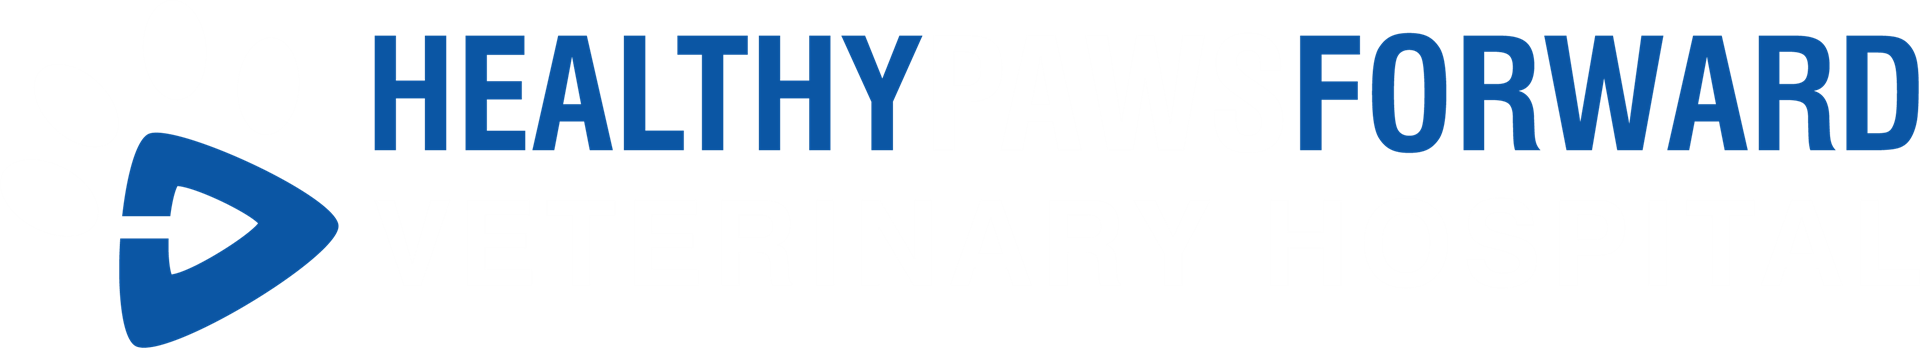 Healthy Paws Forward Veterinary Hospital